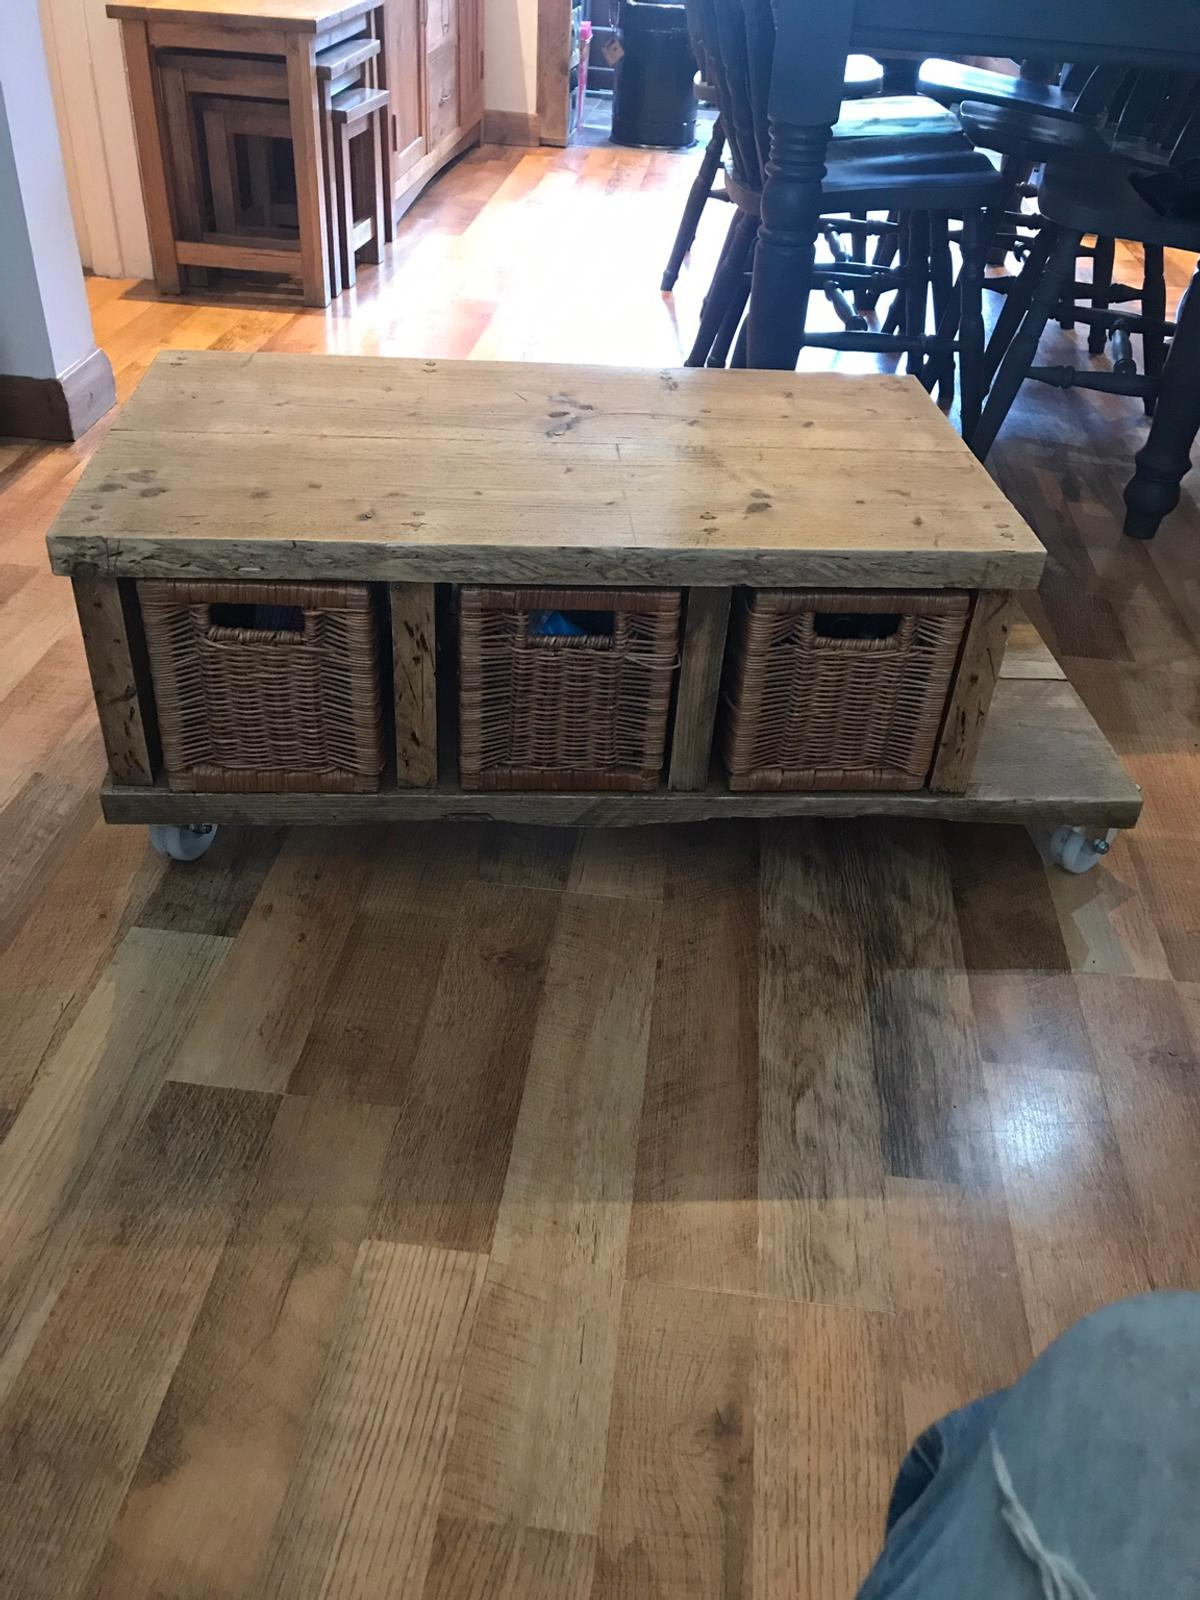 Unusual Rustic Coffee Table In Se12 Royal Borough Of Greenwich For